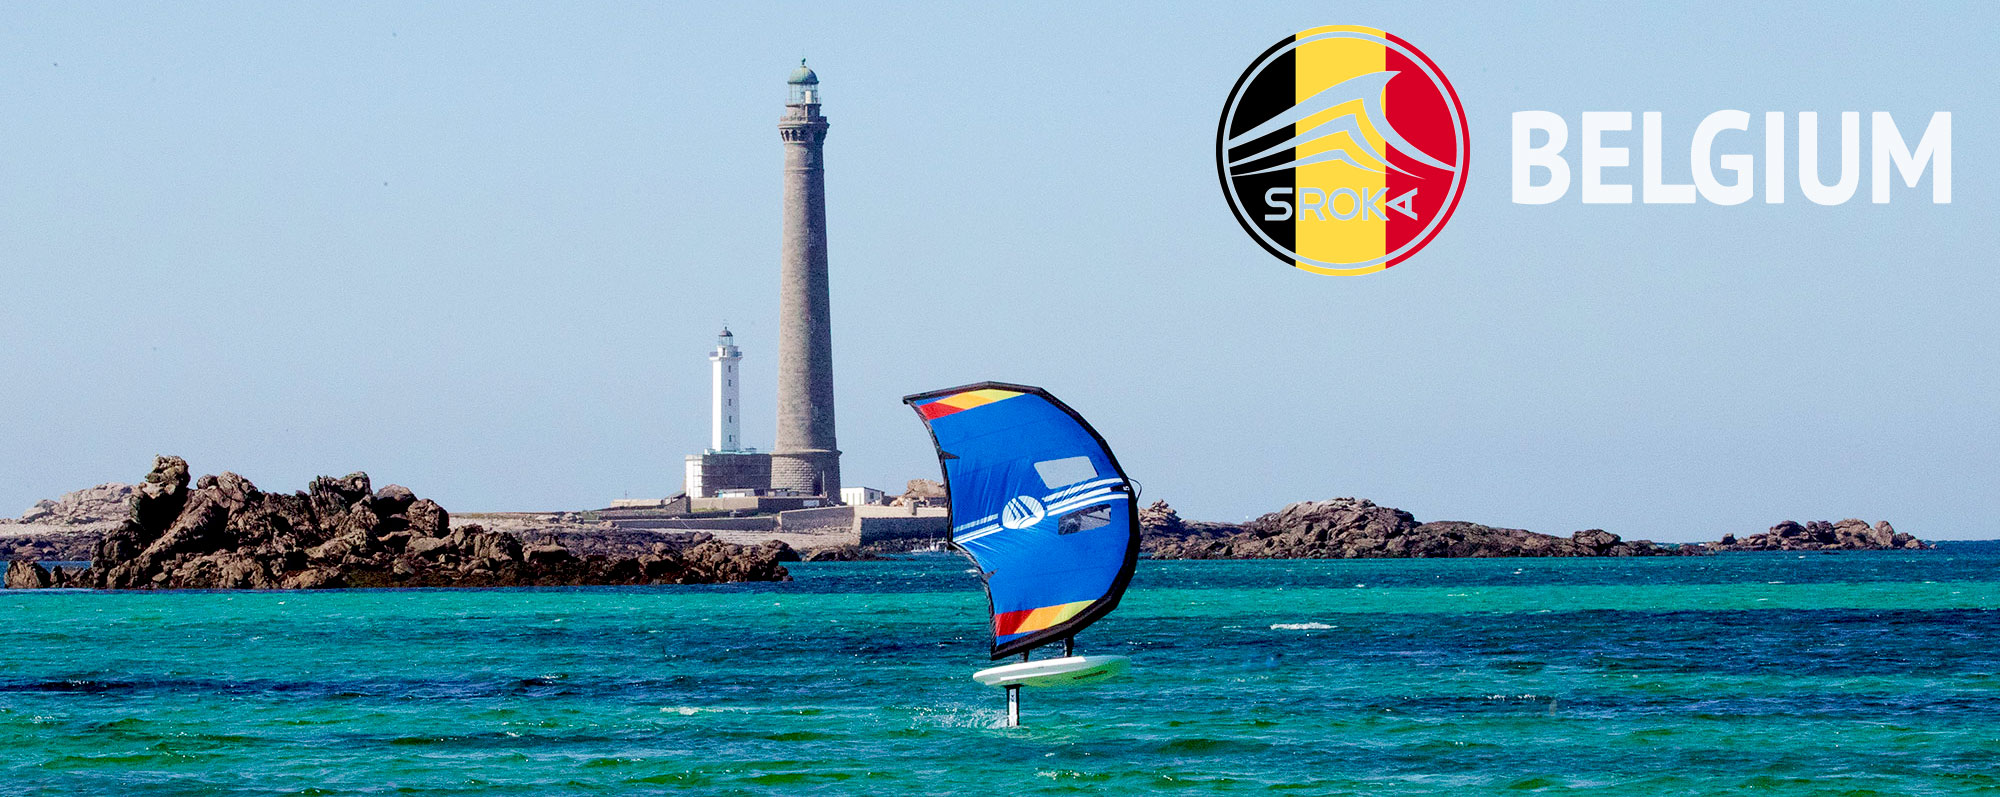 Acheter un wing foil en Belgique, surf foil, SUP foil, kite foil, wind foil ou un stand-up paddle.